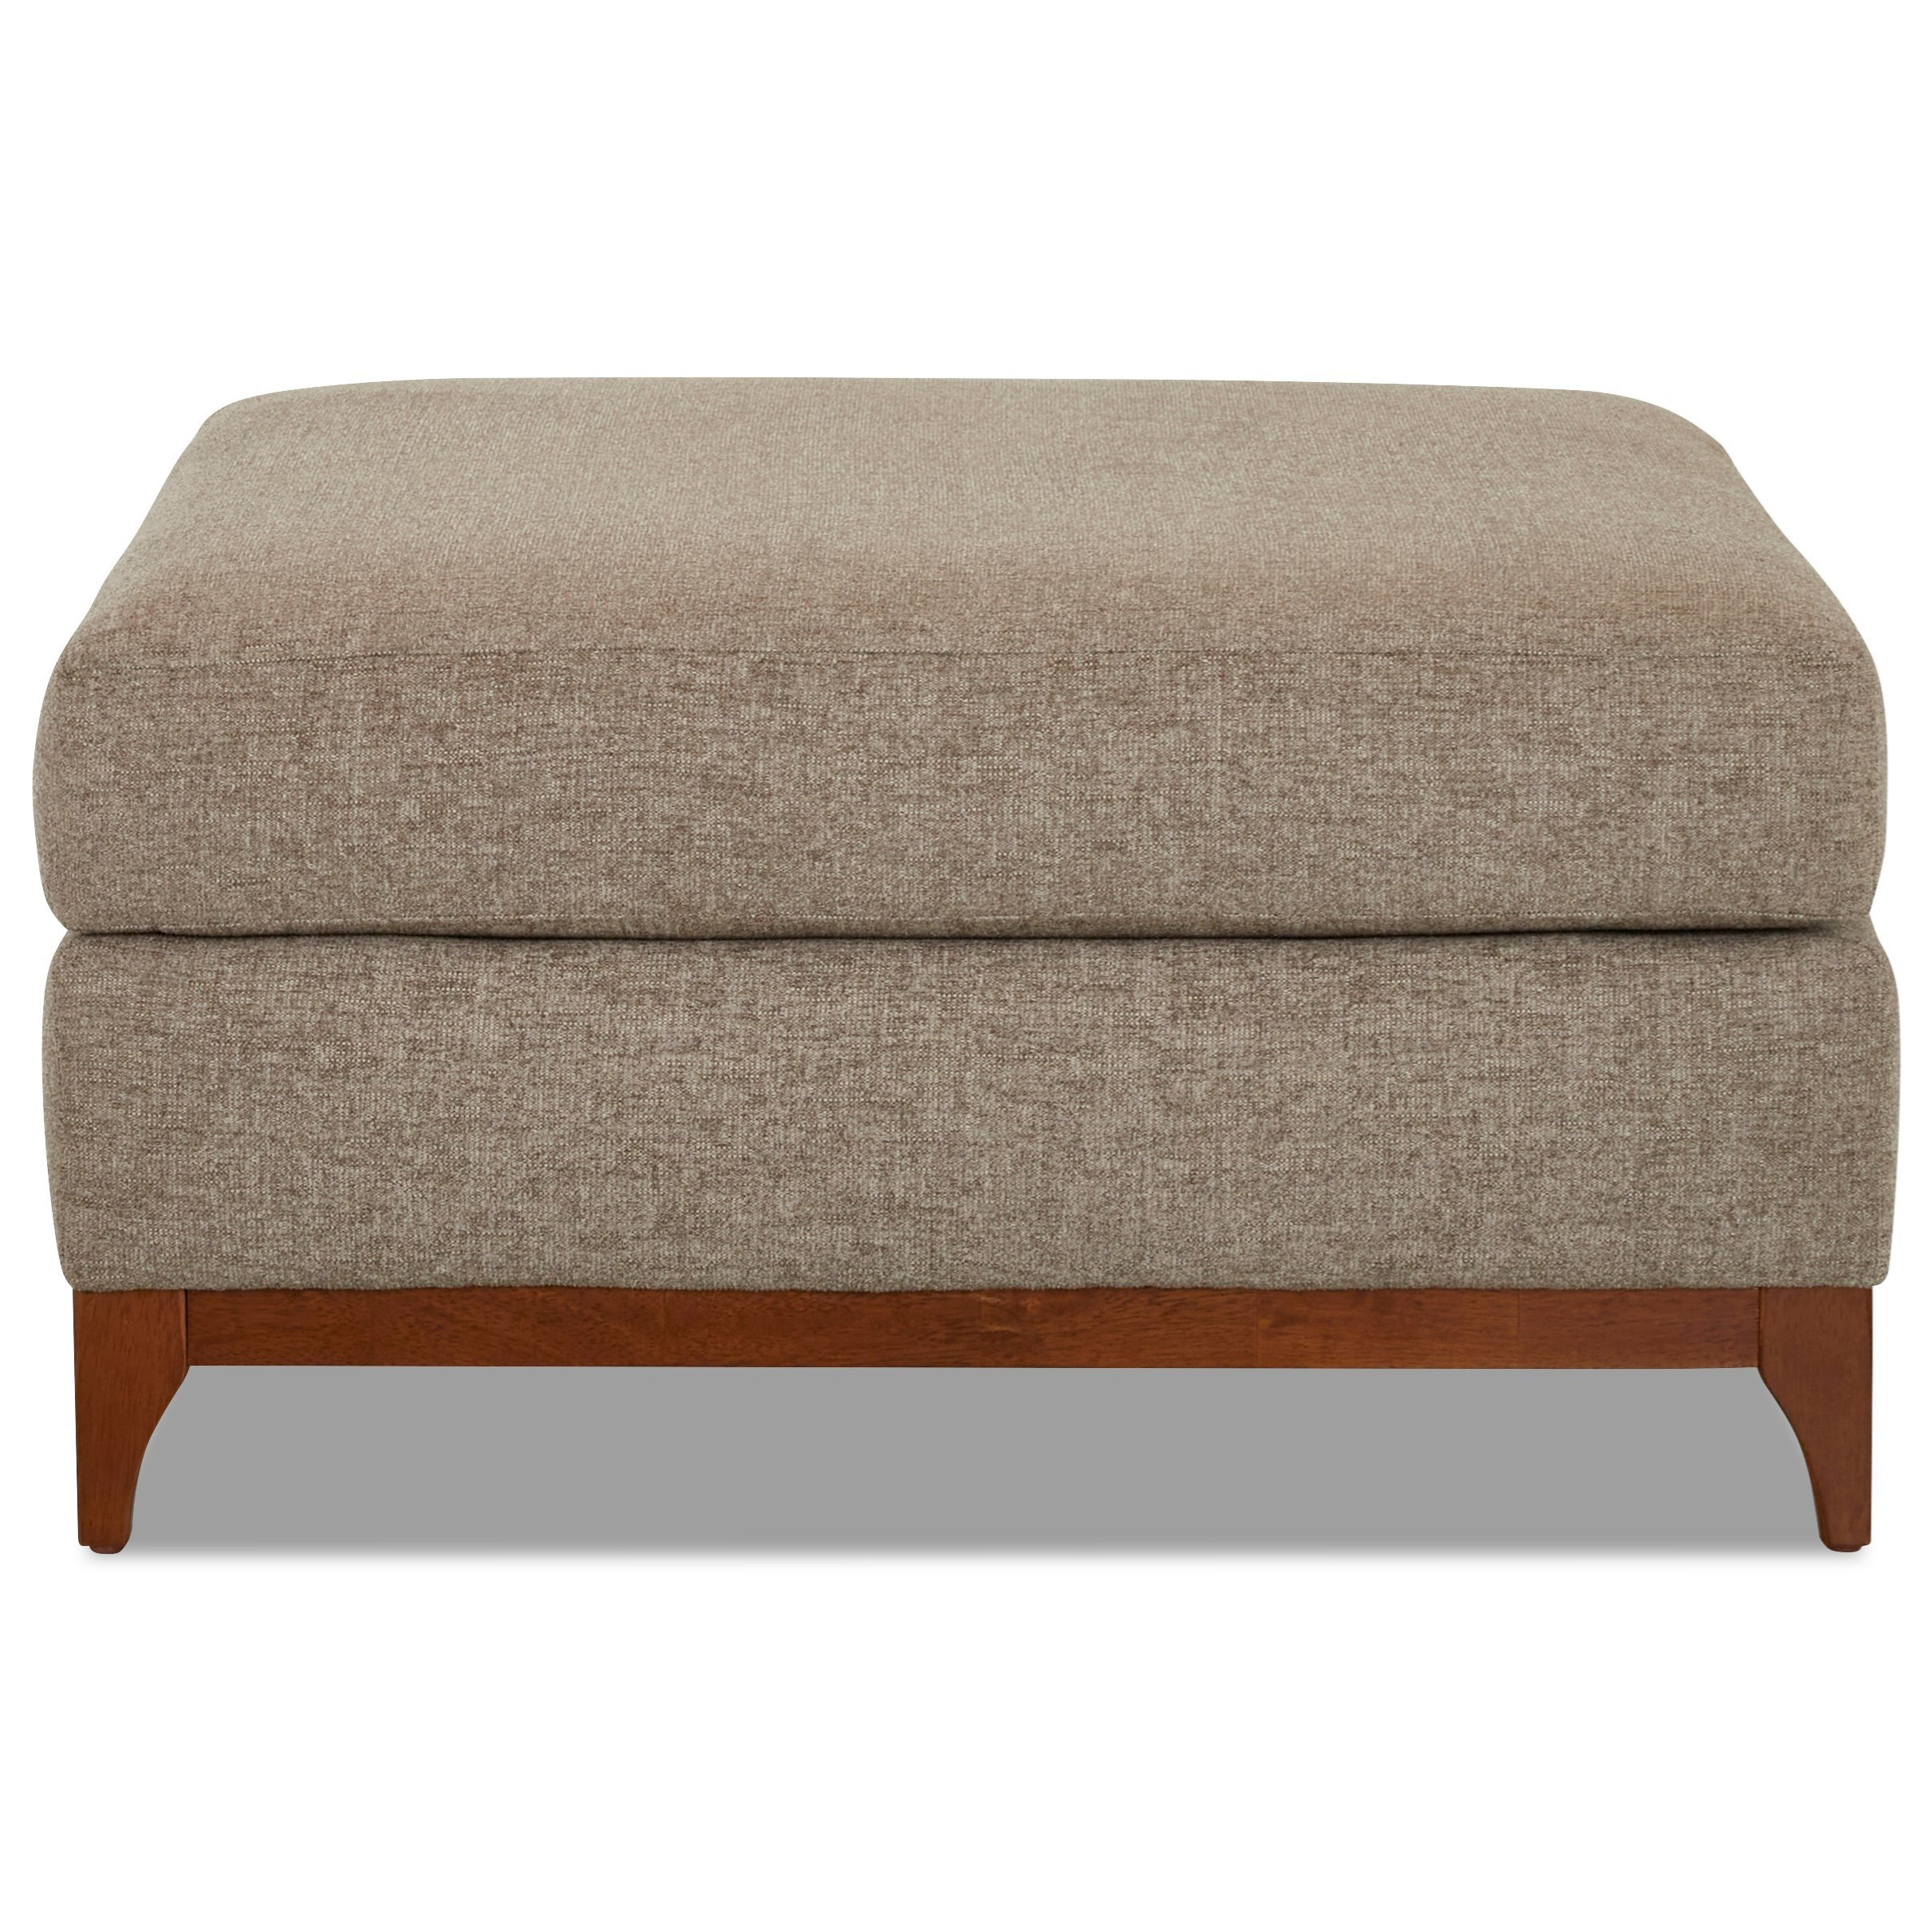 Luca Ottoman by Klaussner at Northeast Factory Direct